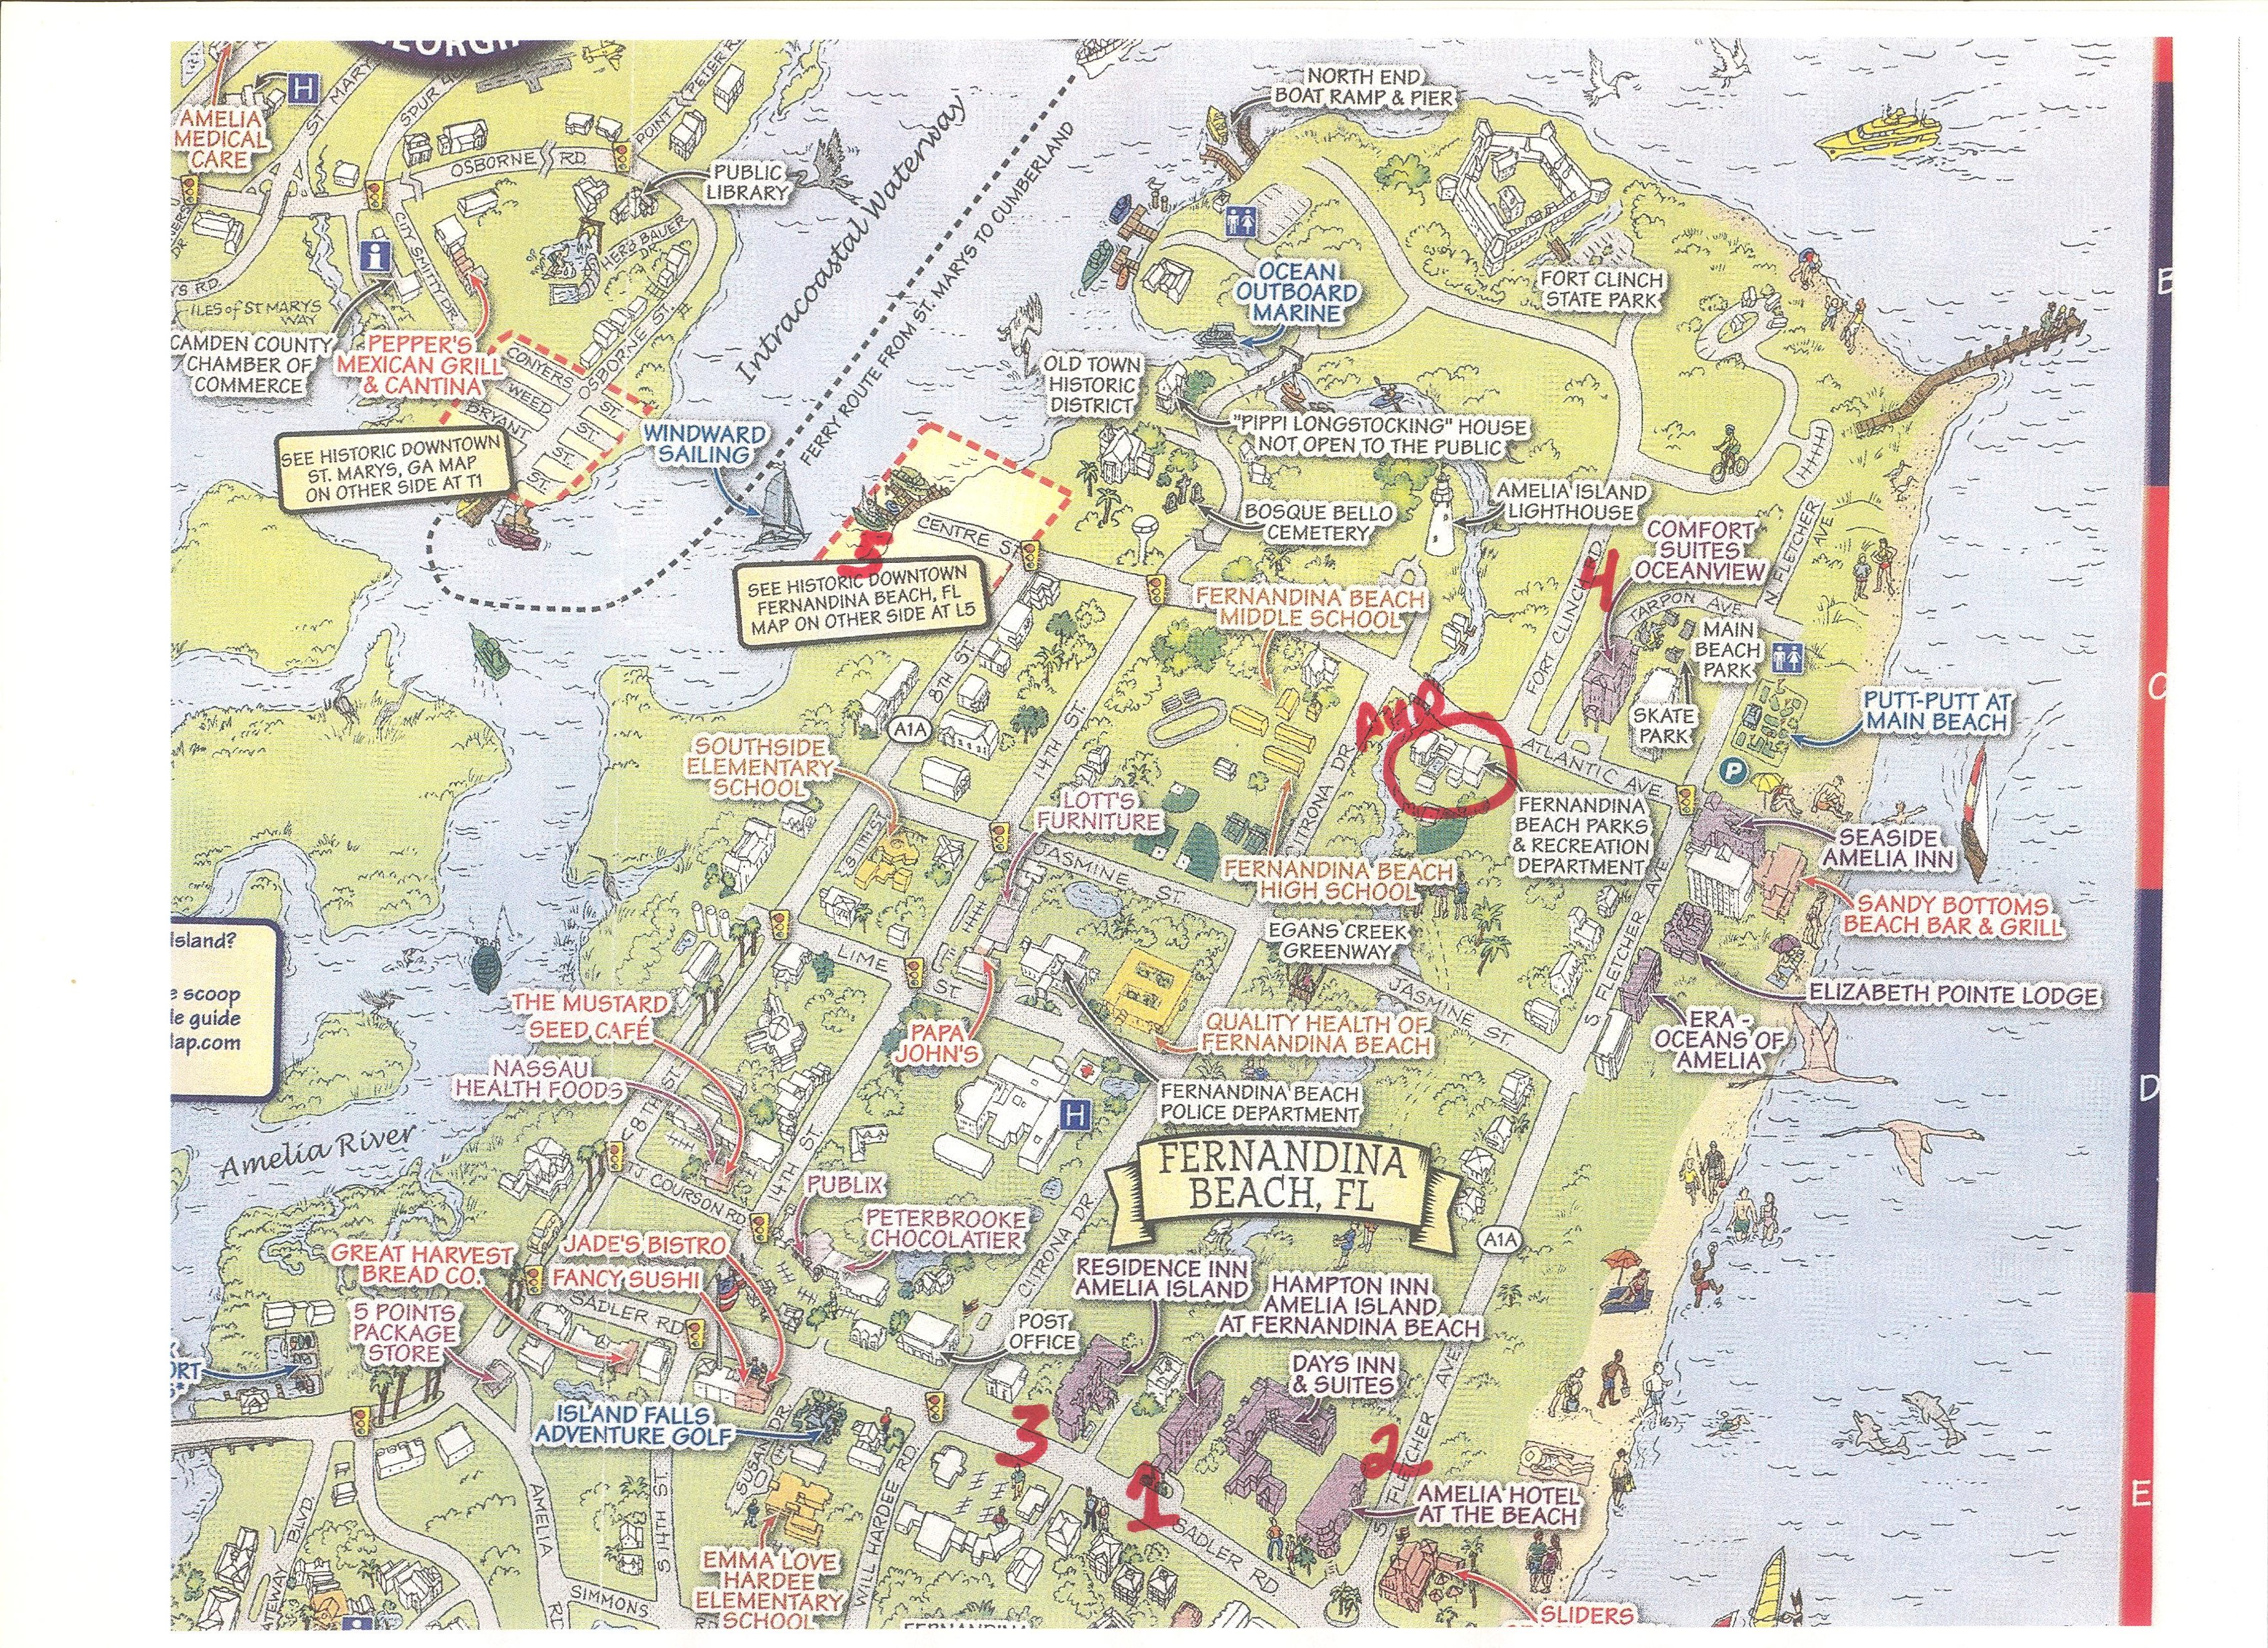 map of amelia island florida with Page 1733466 on Things To Do further 10428074883 likewise Fort Clinch as well Selection  mittee Chooses Pier Park Design 20150424 likewise Horseshoe Beach Florida Hotels.